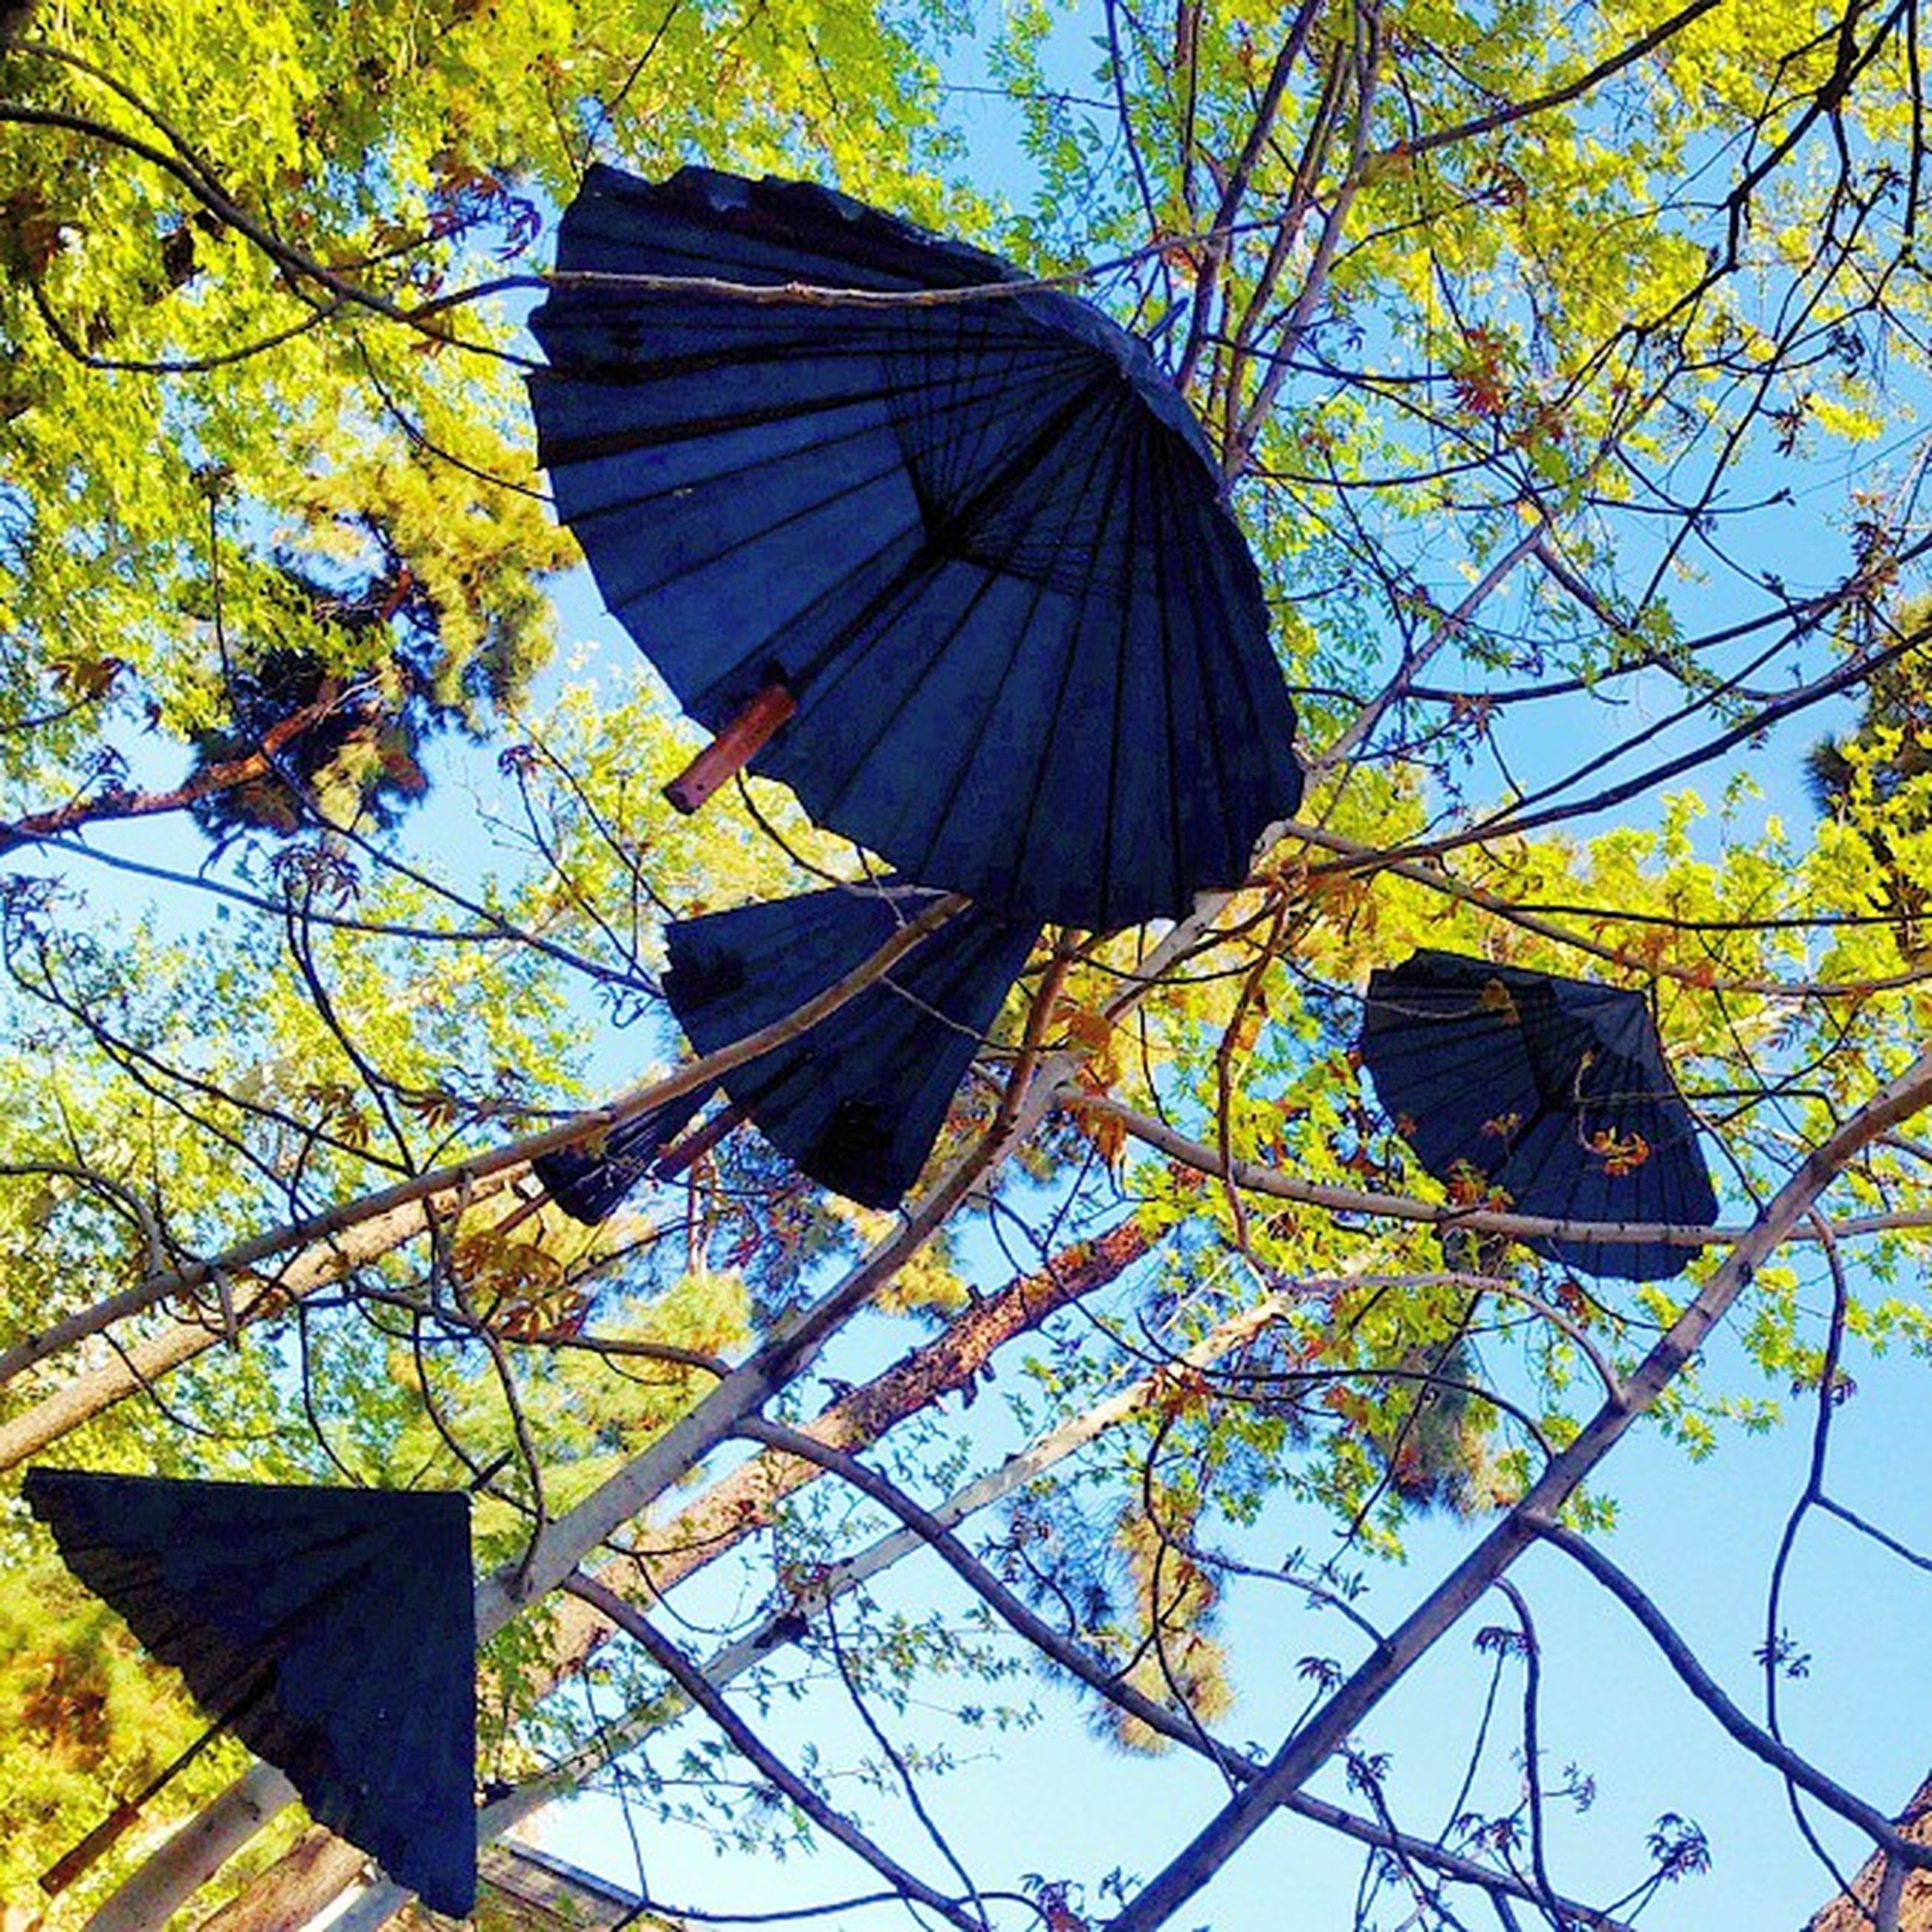 low angle view, tree, branch, leaf, sky, growth, clear sky, nature, autumn, day, outdoors, no people, yellow, built structure, hanging, sunlight, blue, directly below, building exterior, architecture